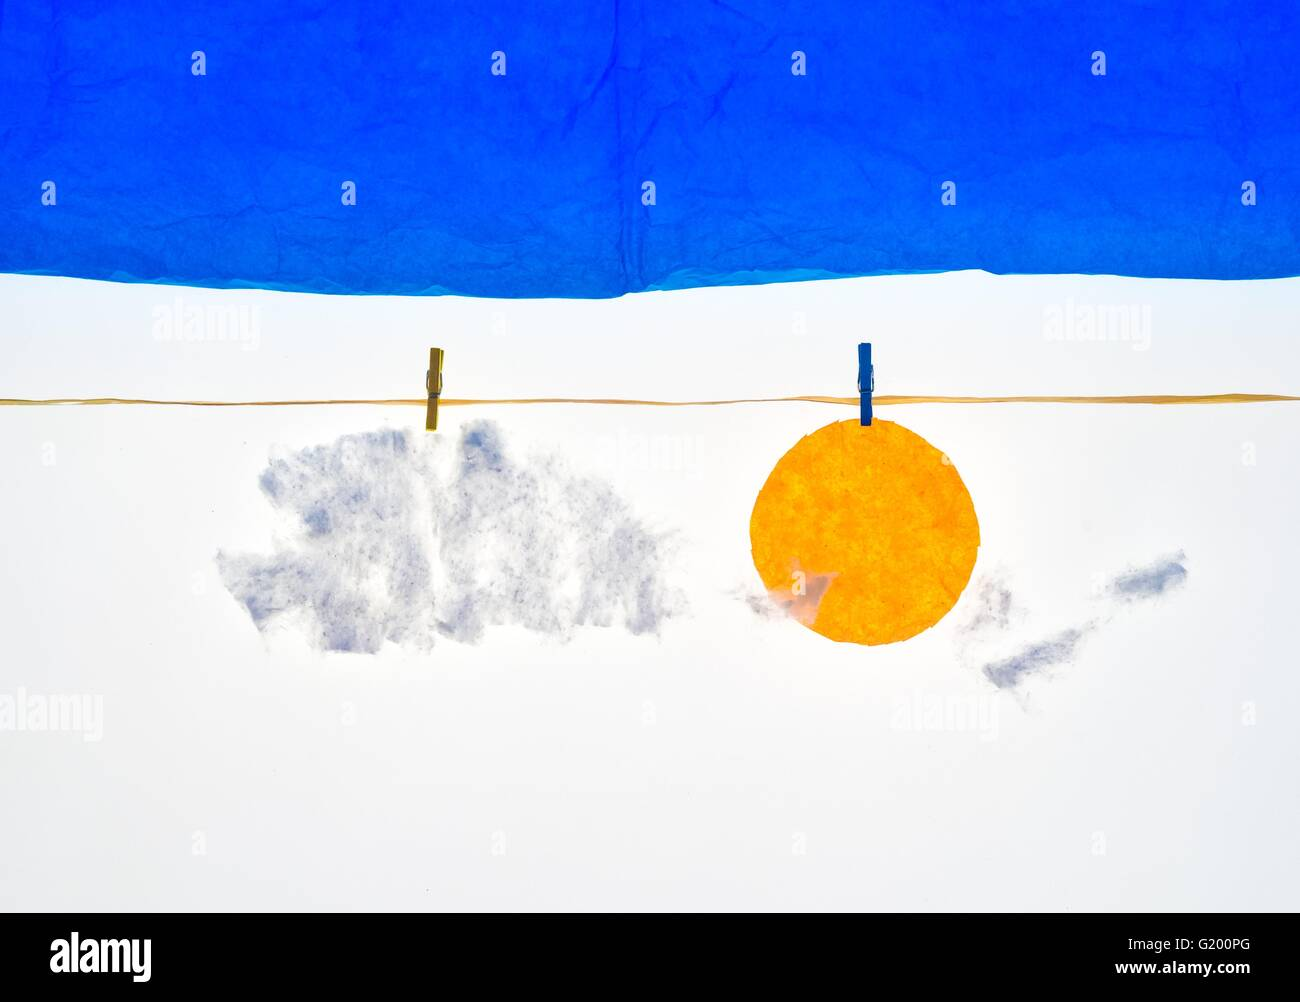 composition with clothes pegs and a fake sun and sky - Stock Image